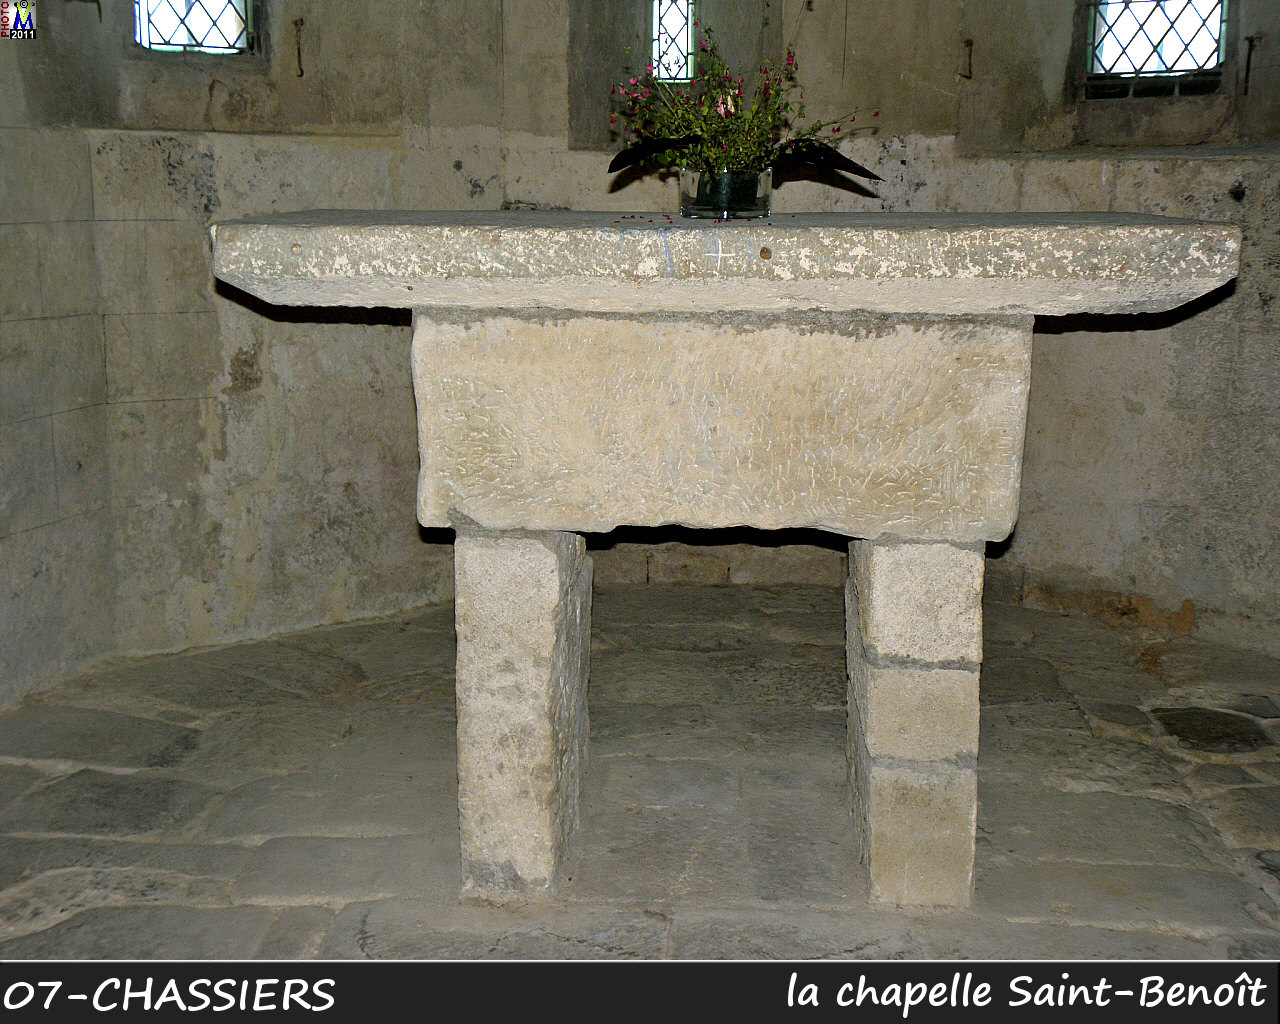 07CHASSIERS_chapelle_210.jpg